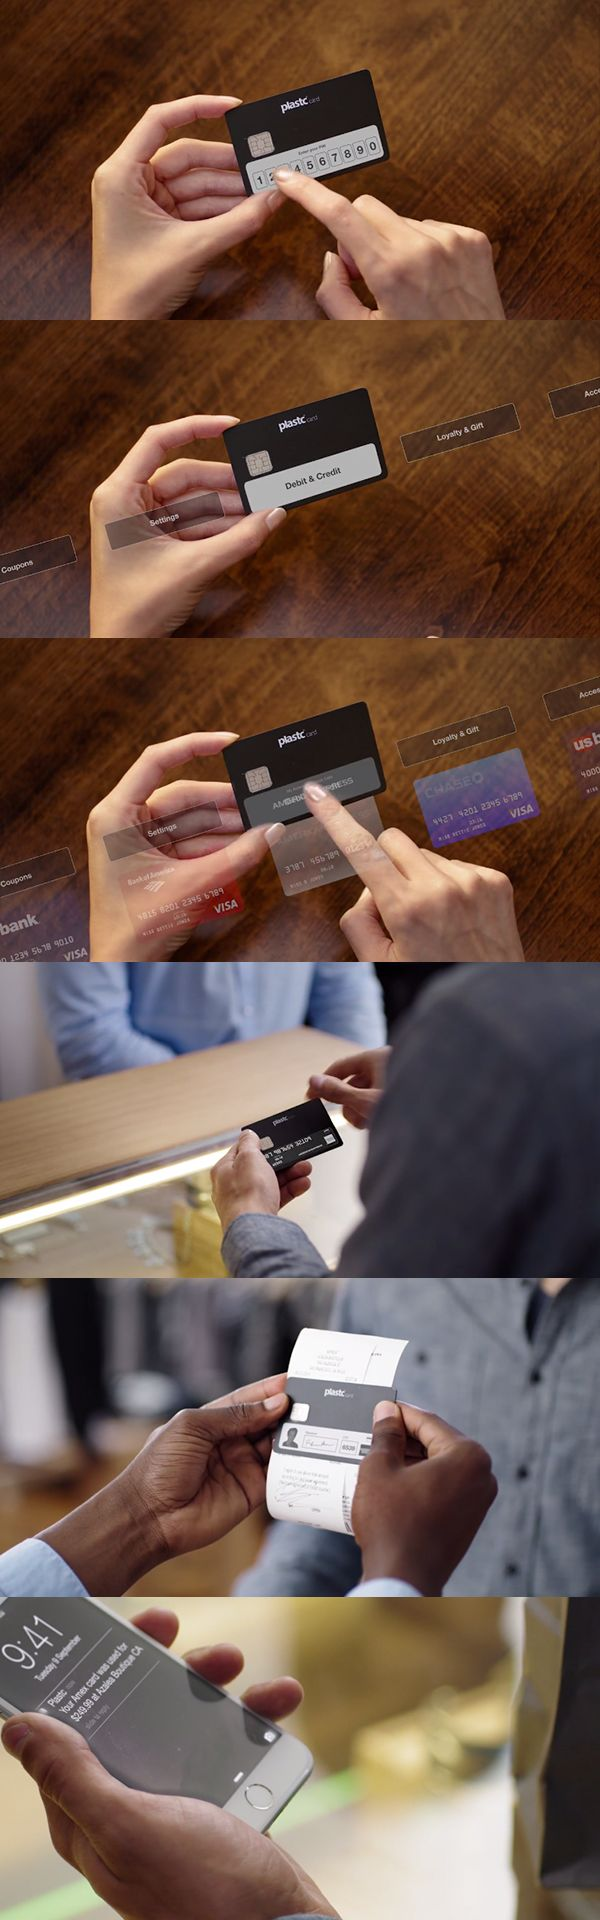 Could Plastc replace your wallet? It can hold more than 20 cards and also has upgradeable firmware.